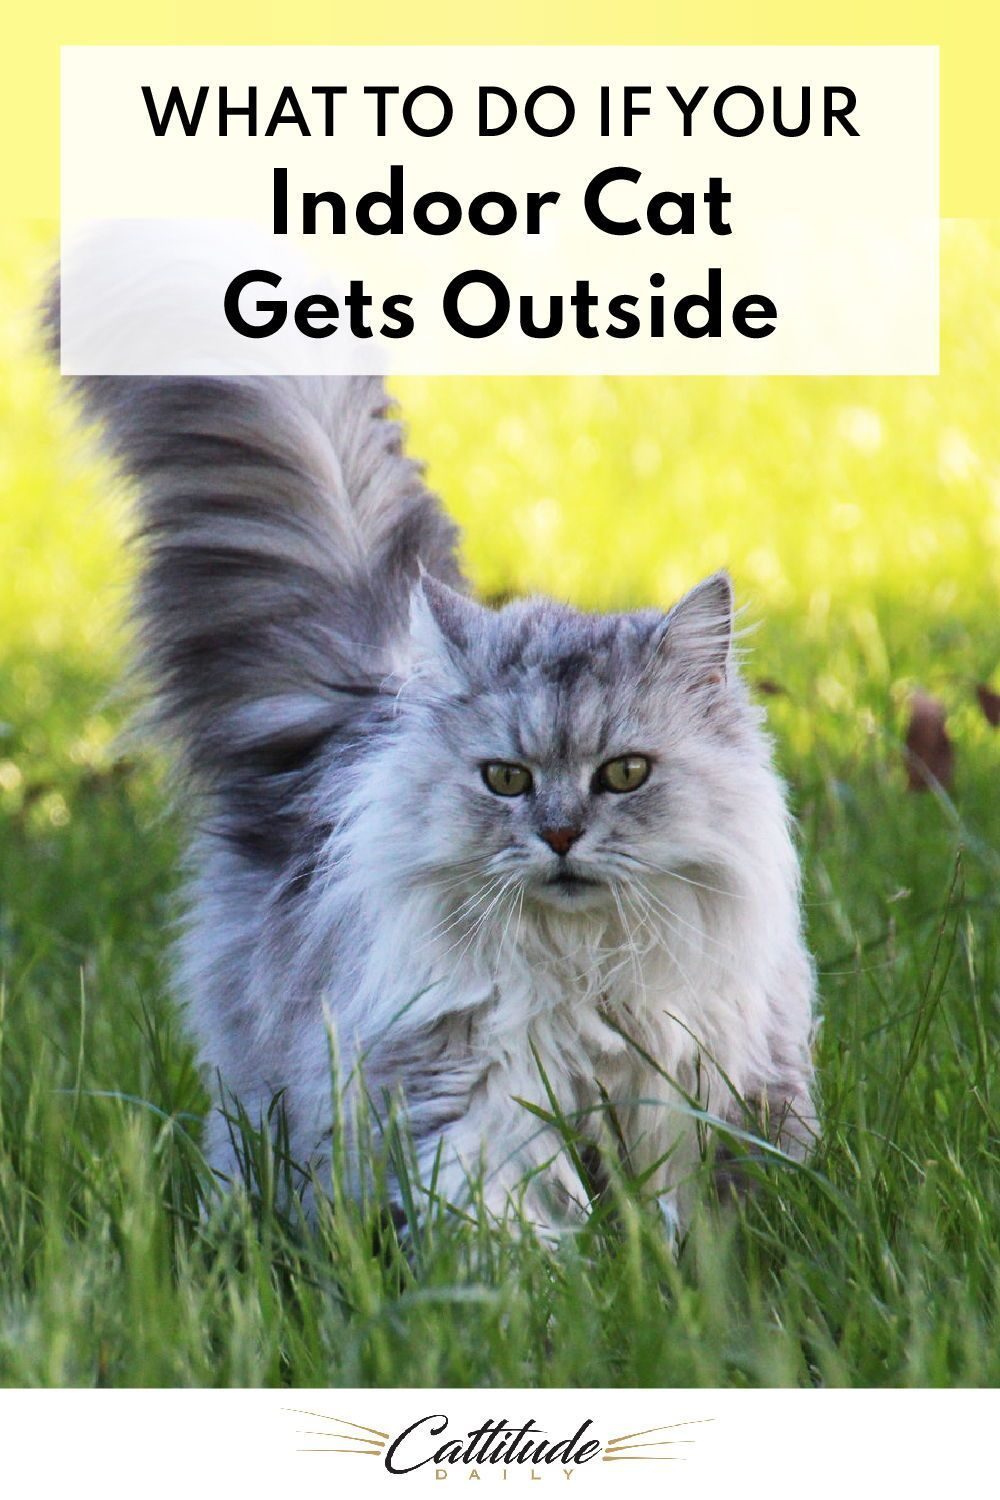 What To Do If Your Indoor Cat Gets Outside In 2020 Indoor Cat Cats Cat Care